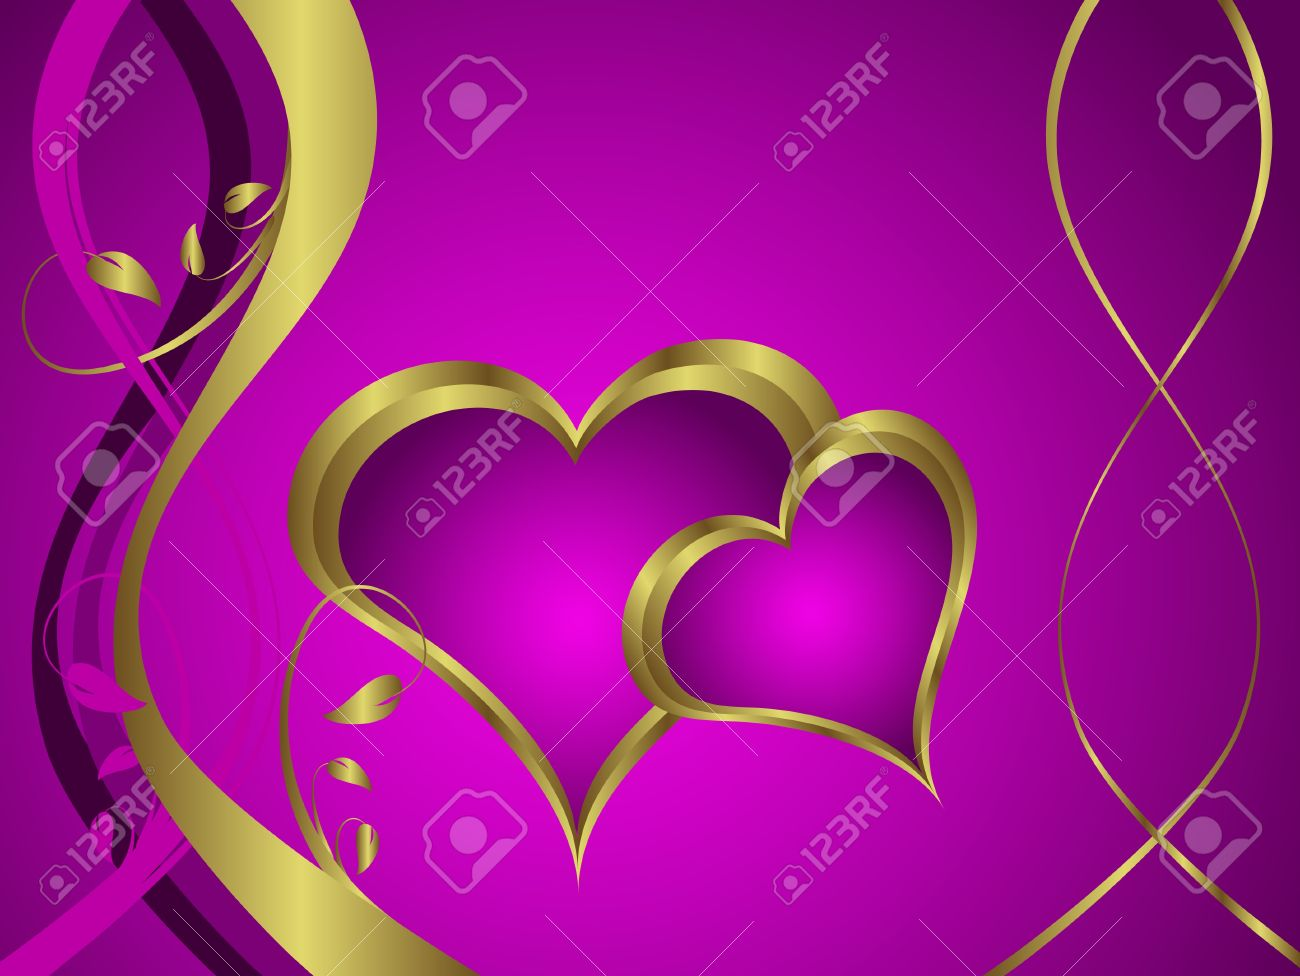 A purple hearts valentines day background with gold hearts on a purple hearts valentines day background with gold hearts on a purple and gold background stock buycottarizona